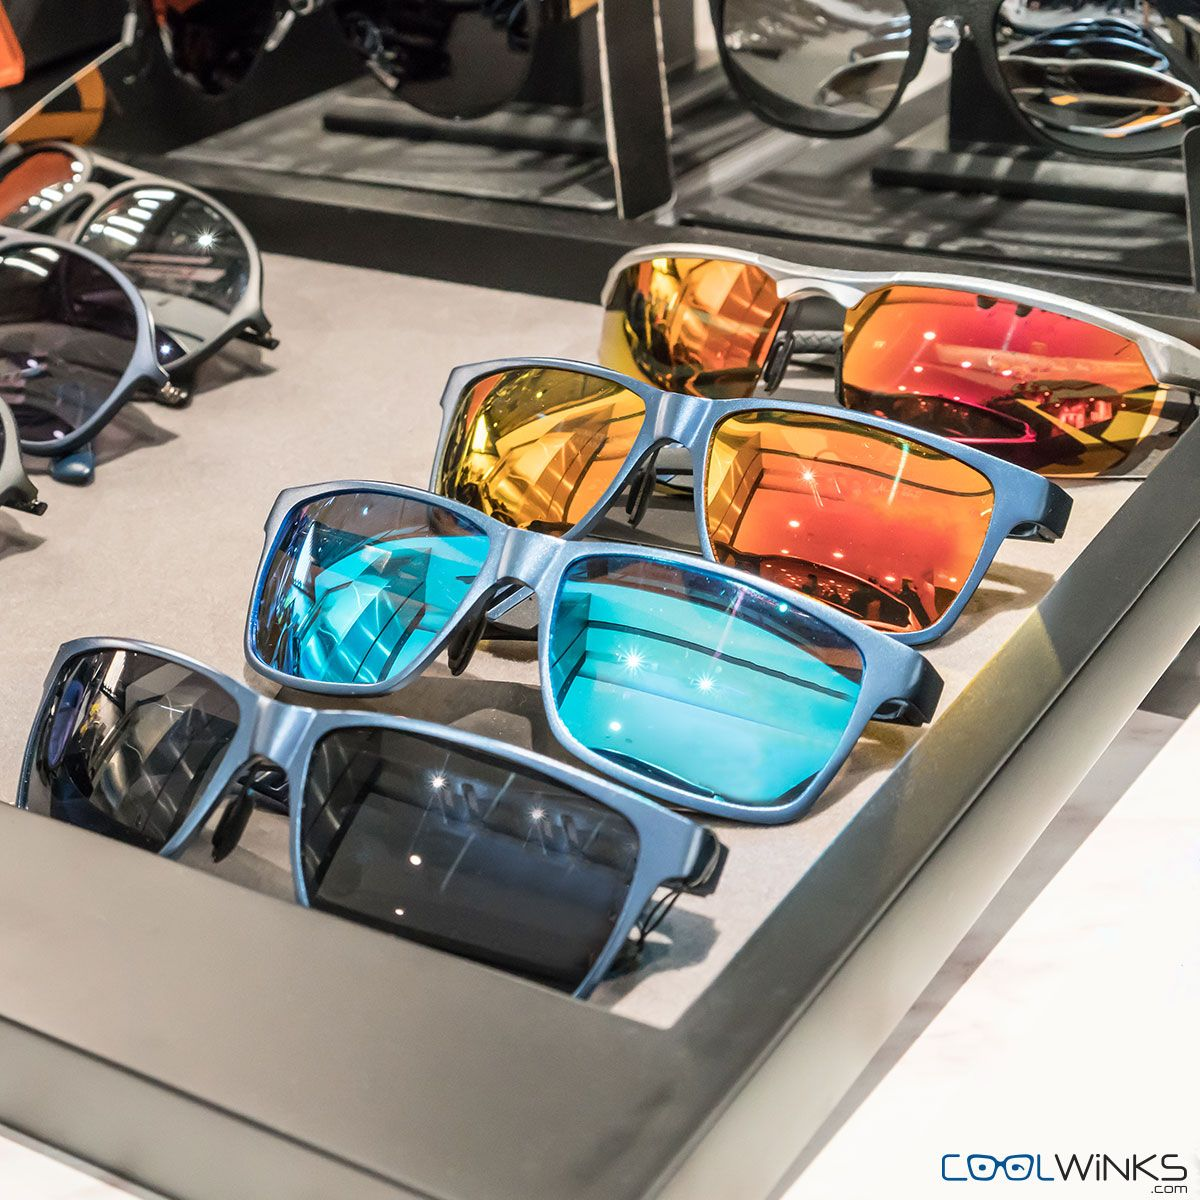 2a57eabf679 Don t Miss BUY 1 GET 1 OFFER on Sunglasses  Coolwinks! Avail BOGO ...